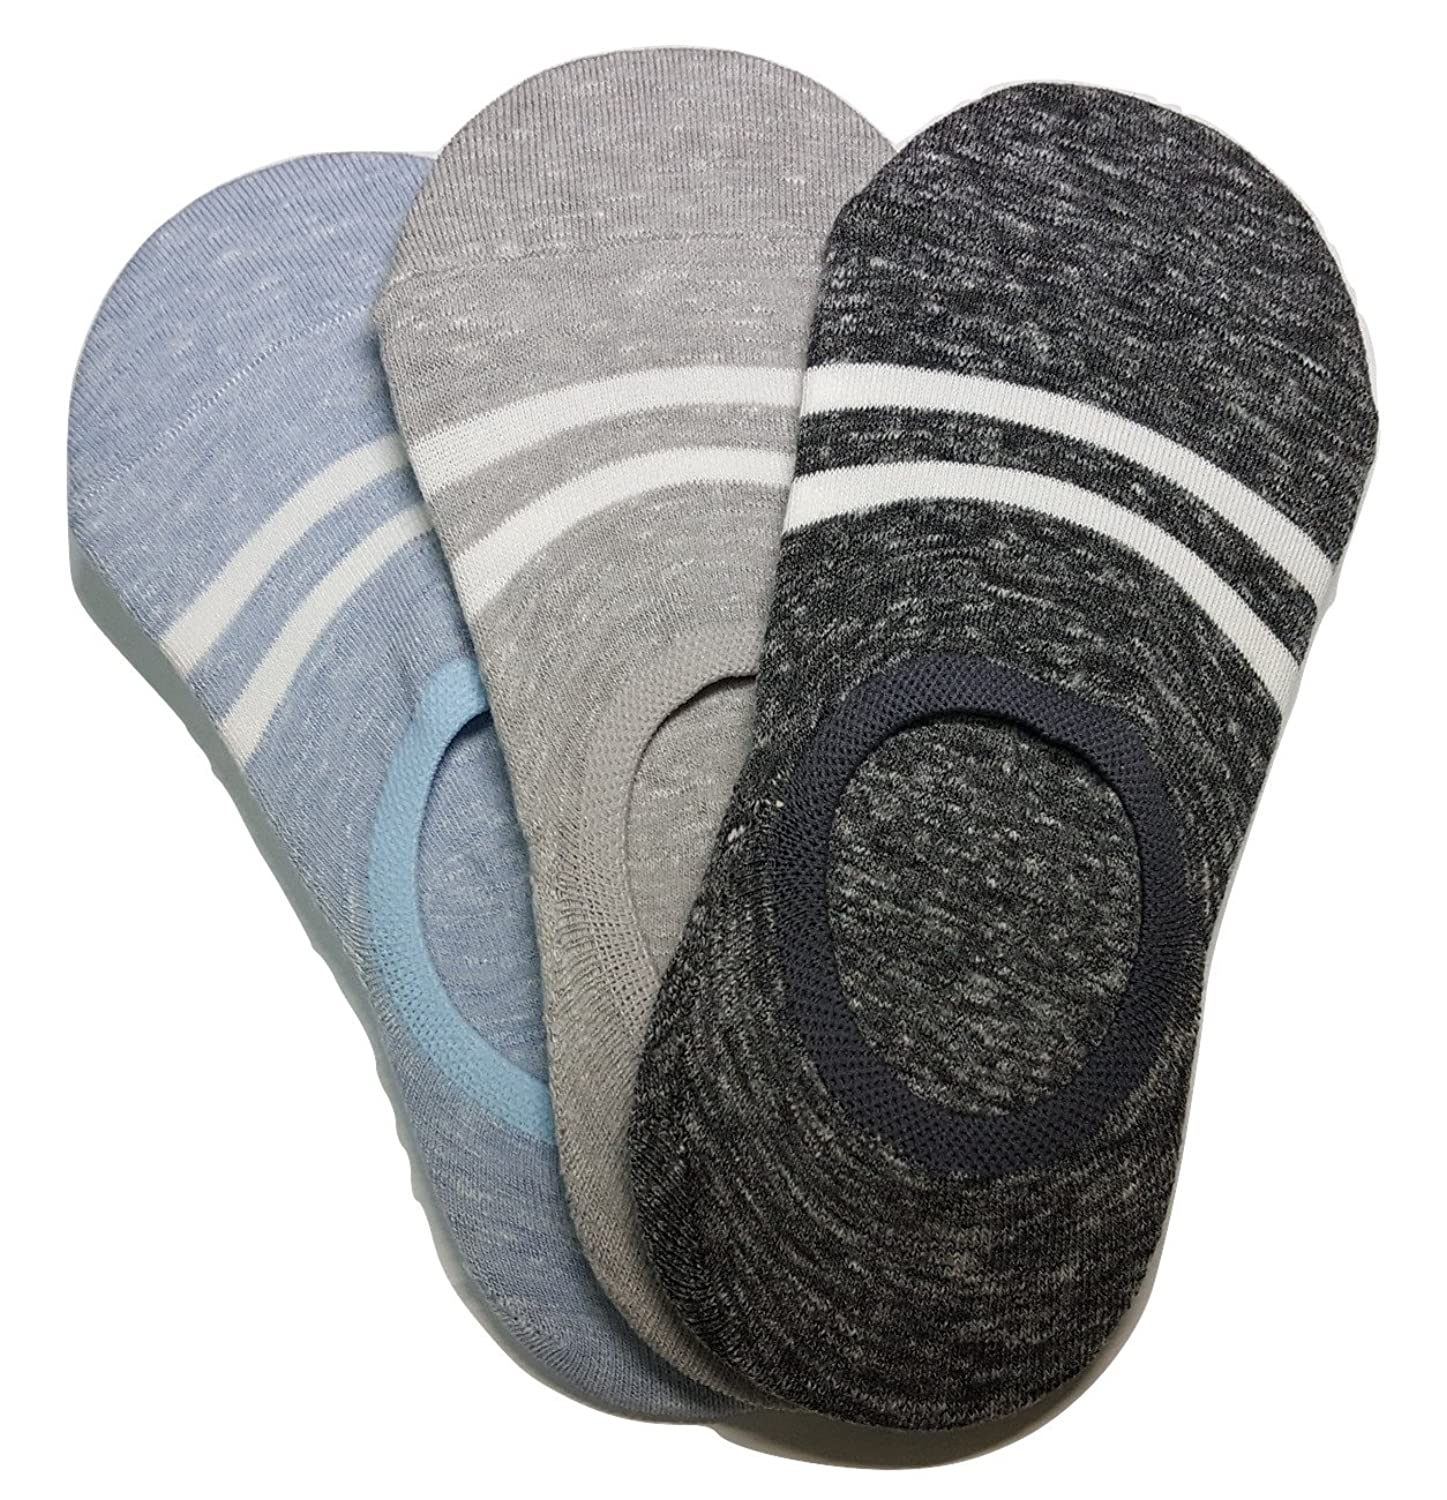 Unisex Striped Fashion No-Show Liner Socks, 3 Pairs